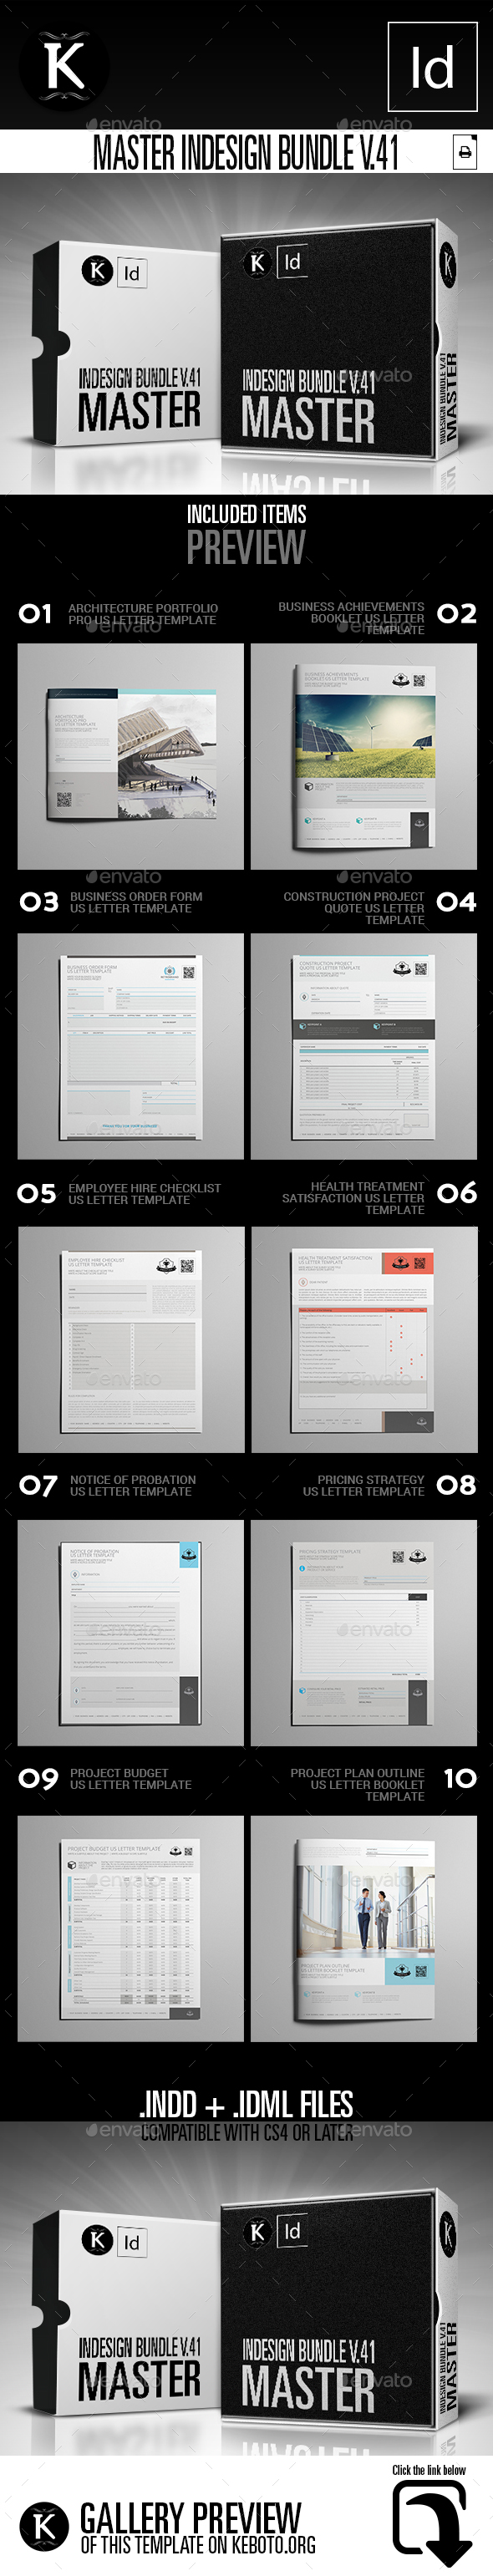 GraphicRiver Master inDesign Bundle v.41 21079112